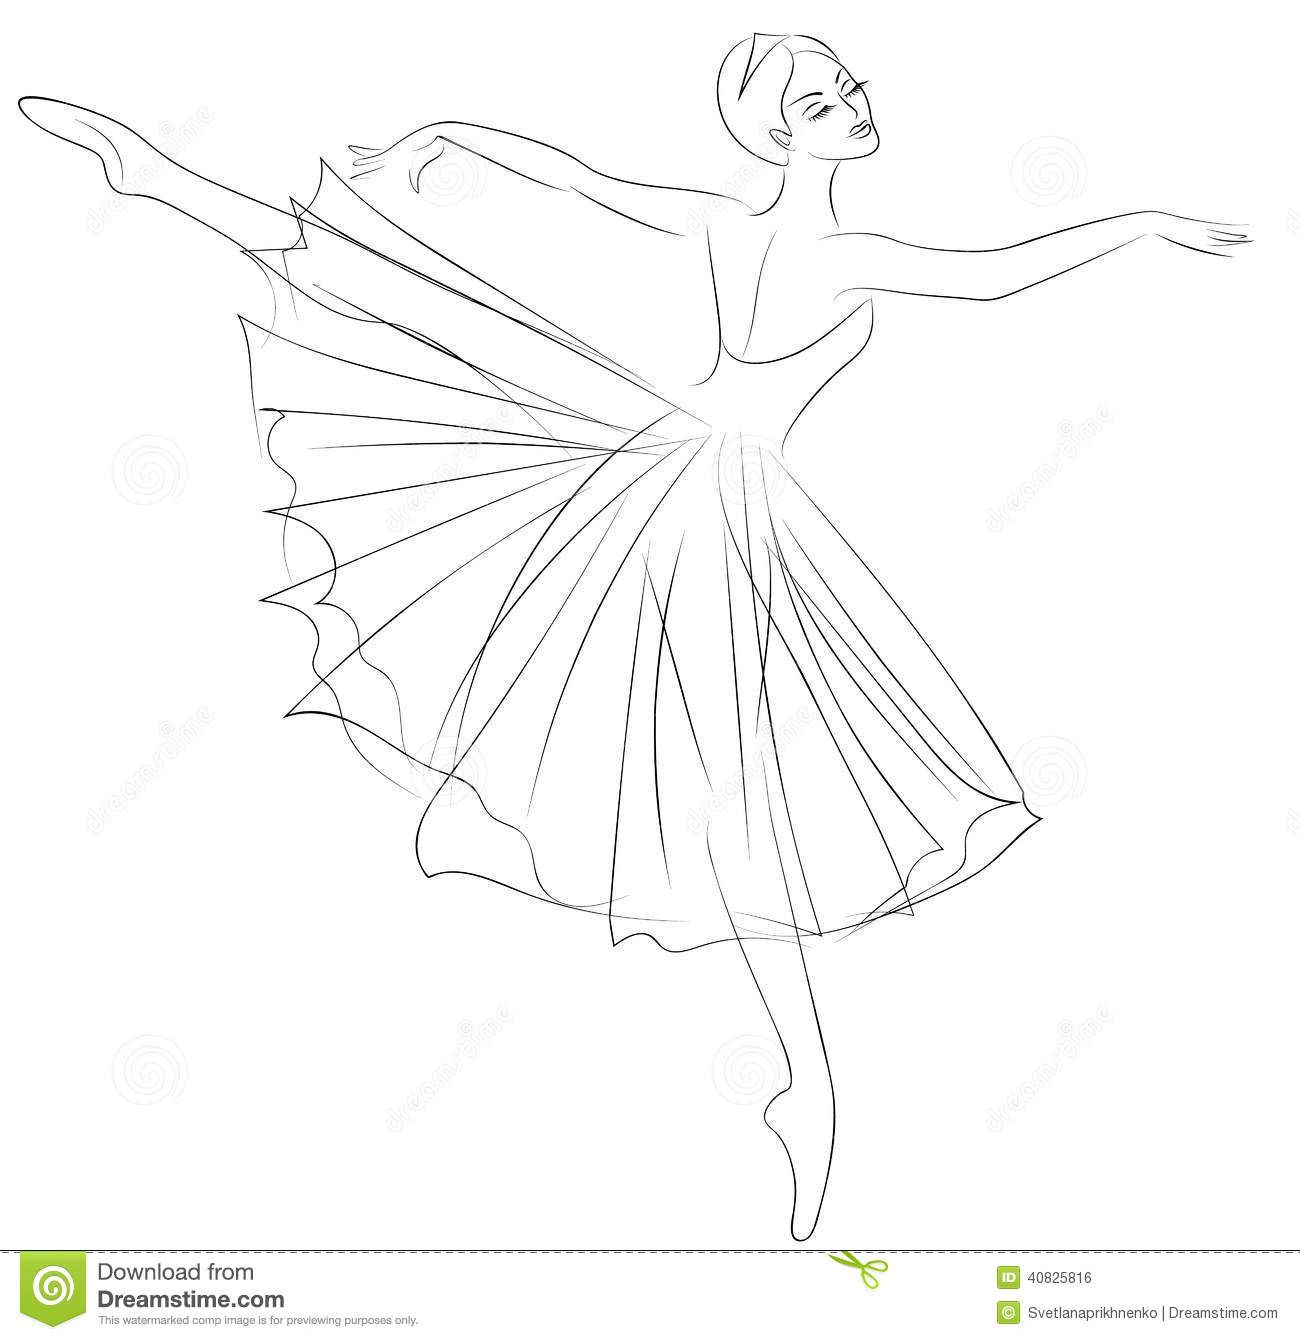 Misty copeland clipart picture transparent stock View source image   Misty Copeland/Ballerinas   Sketches, Pencil ... picture transparent stock